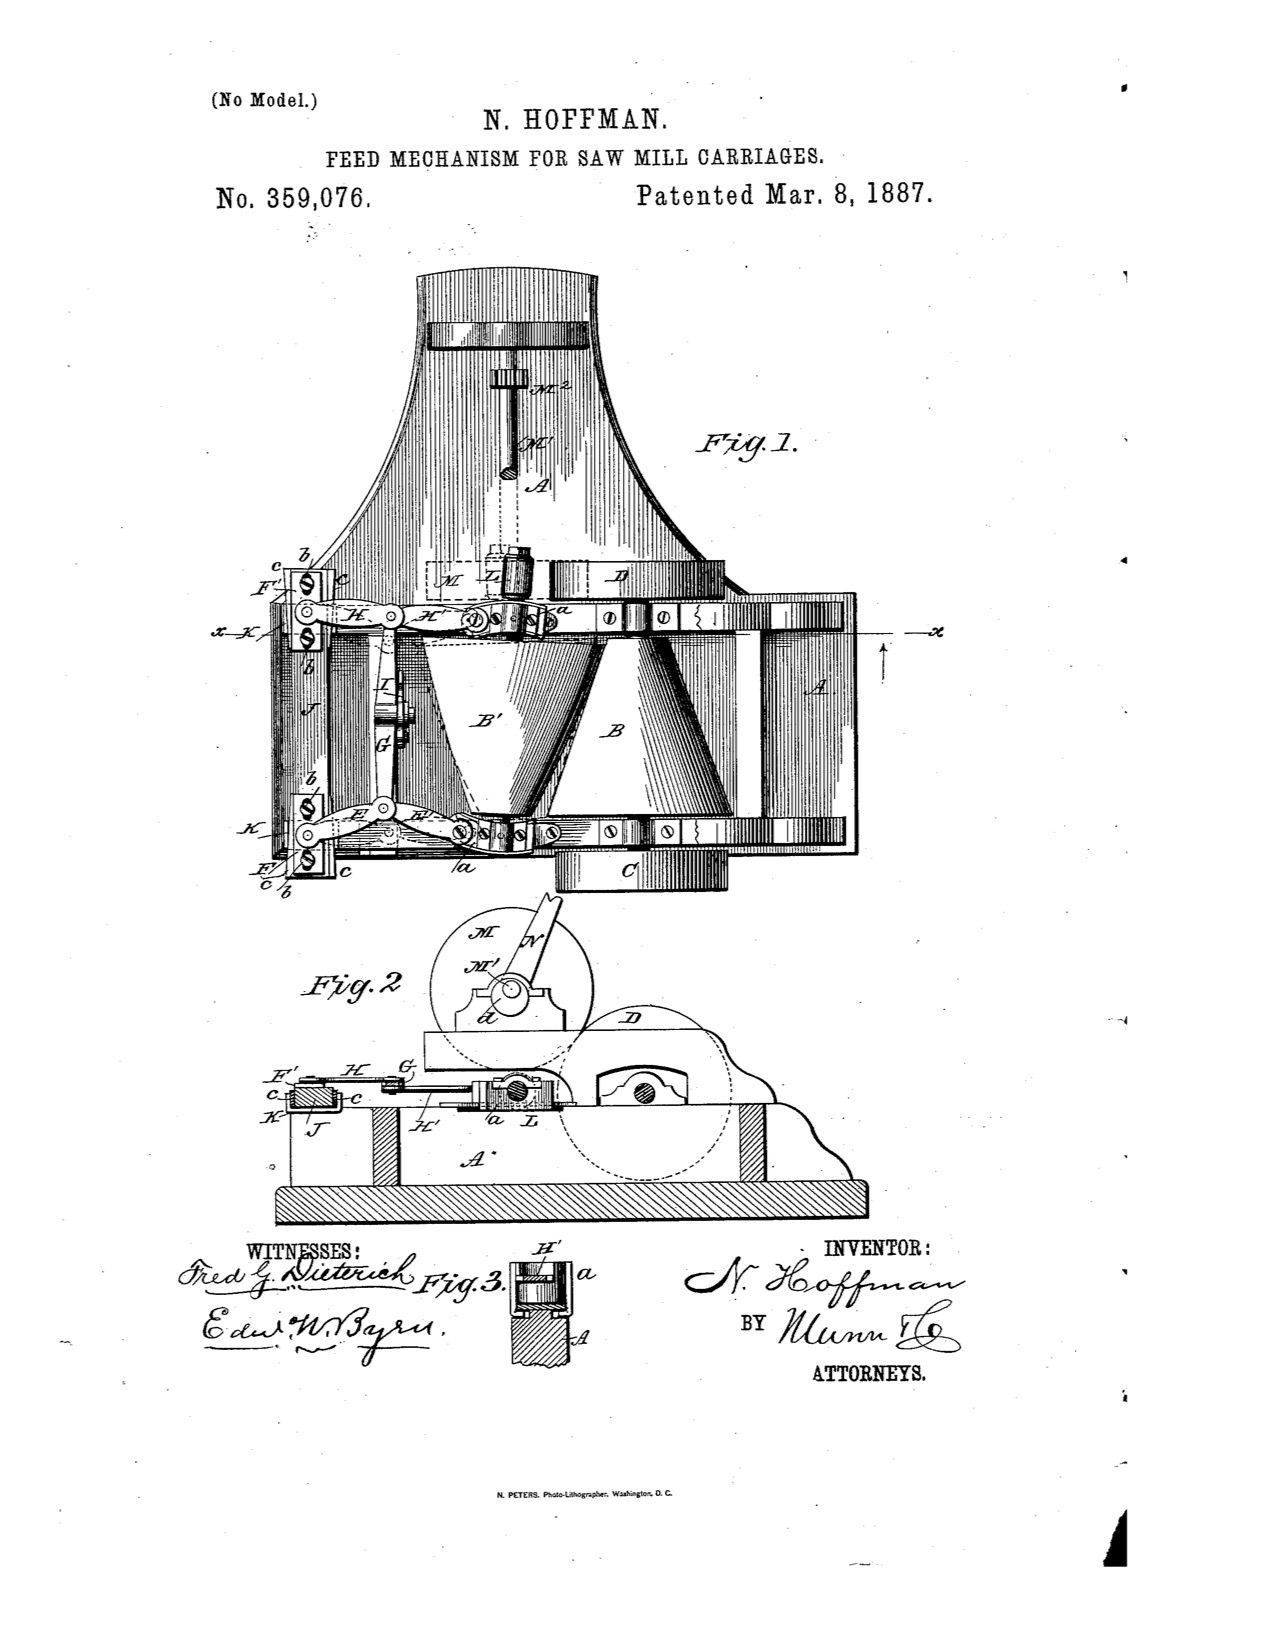 1886 A feed mechanism for saw mill carriages